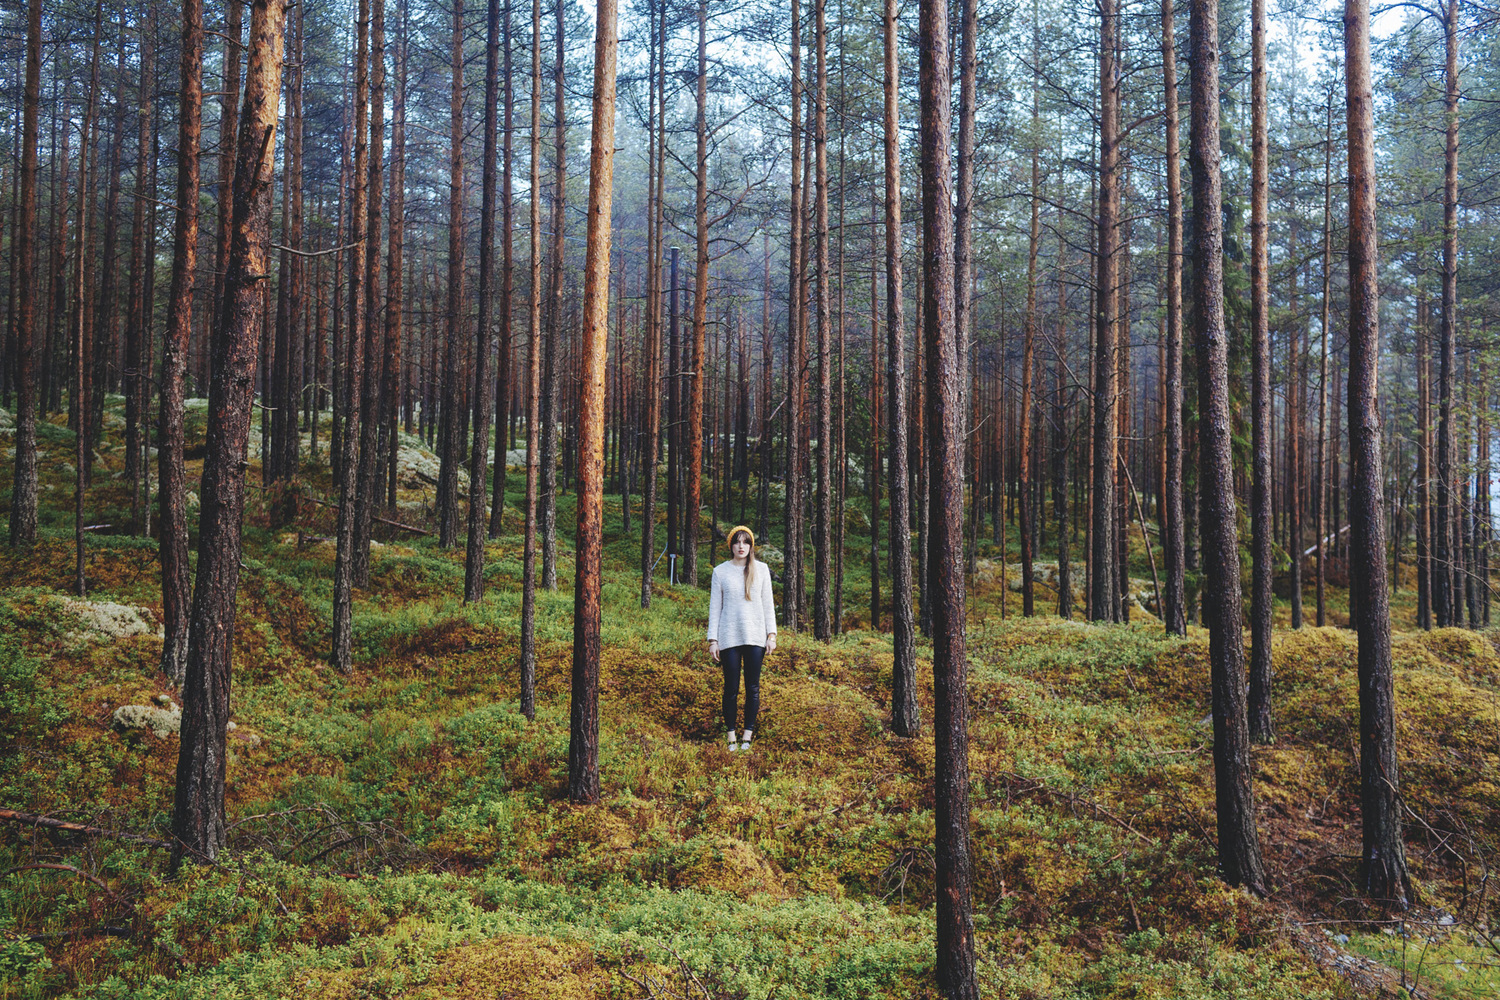 The Fjords of Norway / Alex Strohl (8)